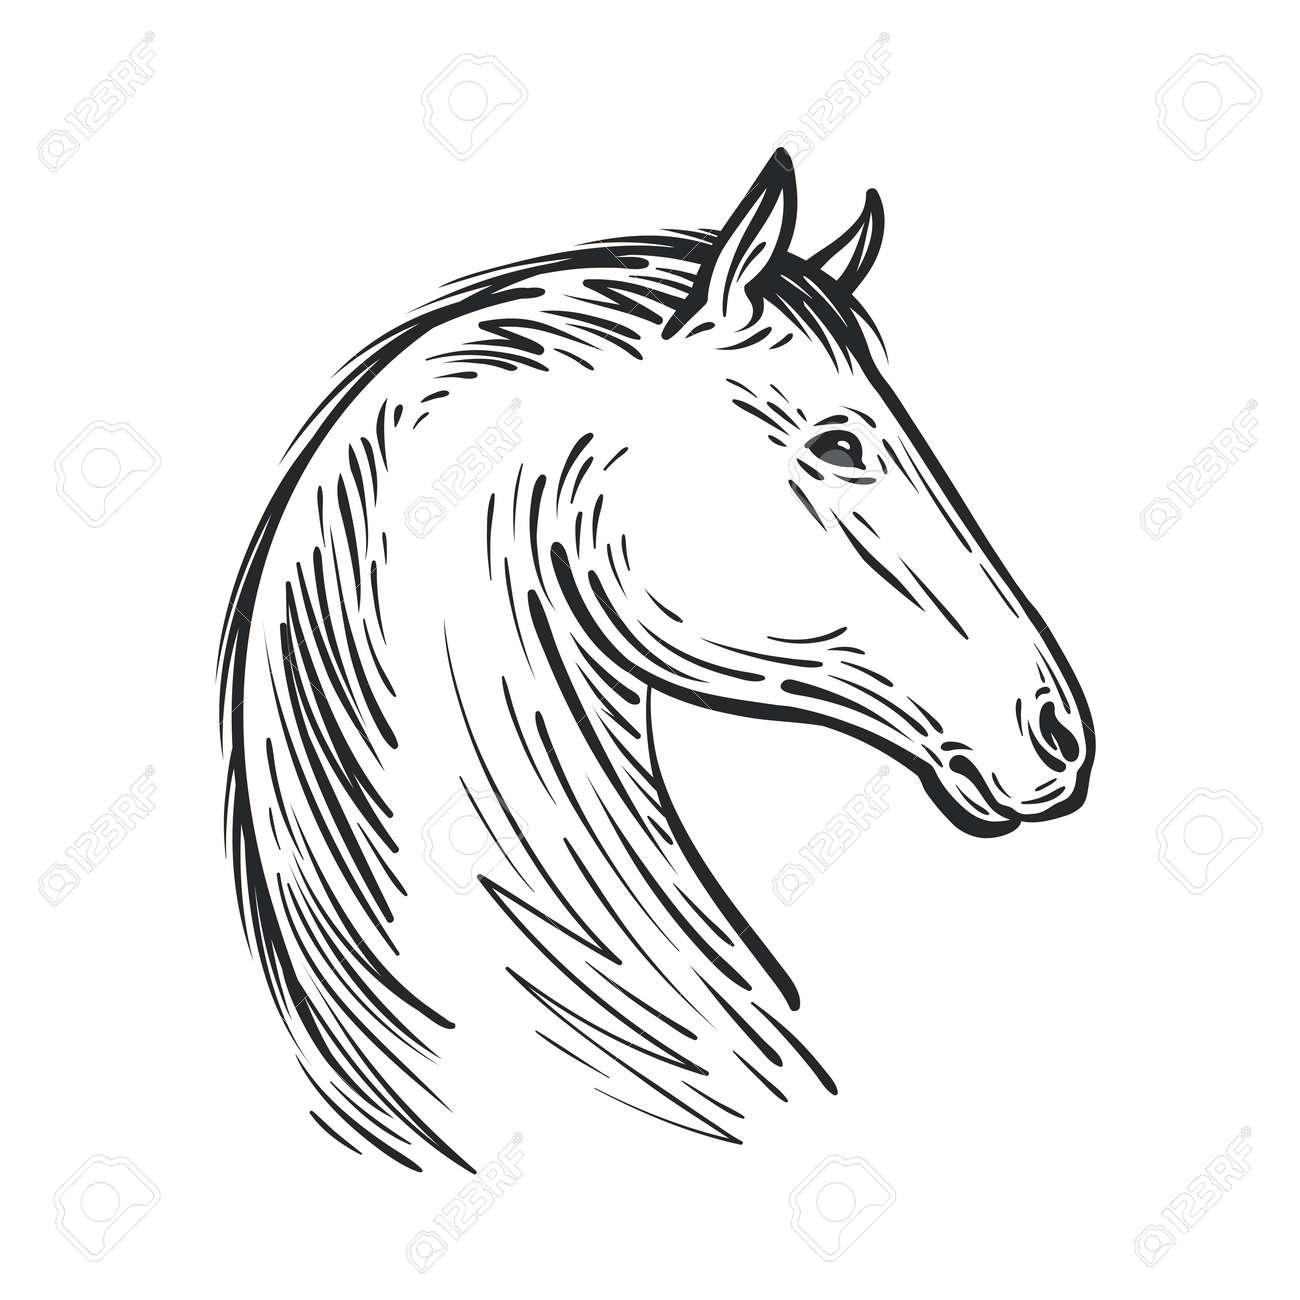 Horse Sketch Royalty Free Cliparts Vectors And Stock Illustration Image 92136043